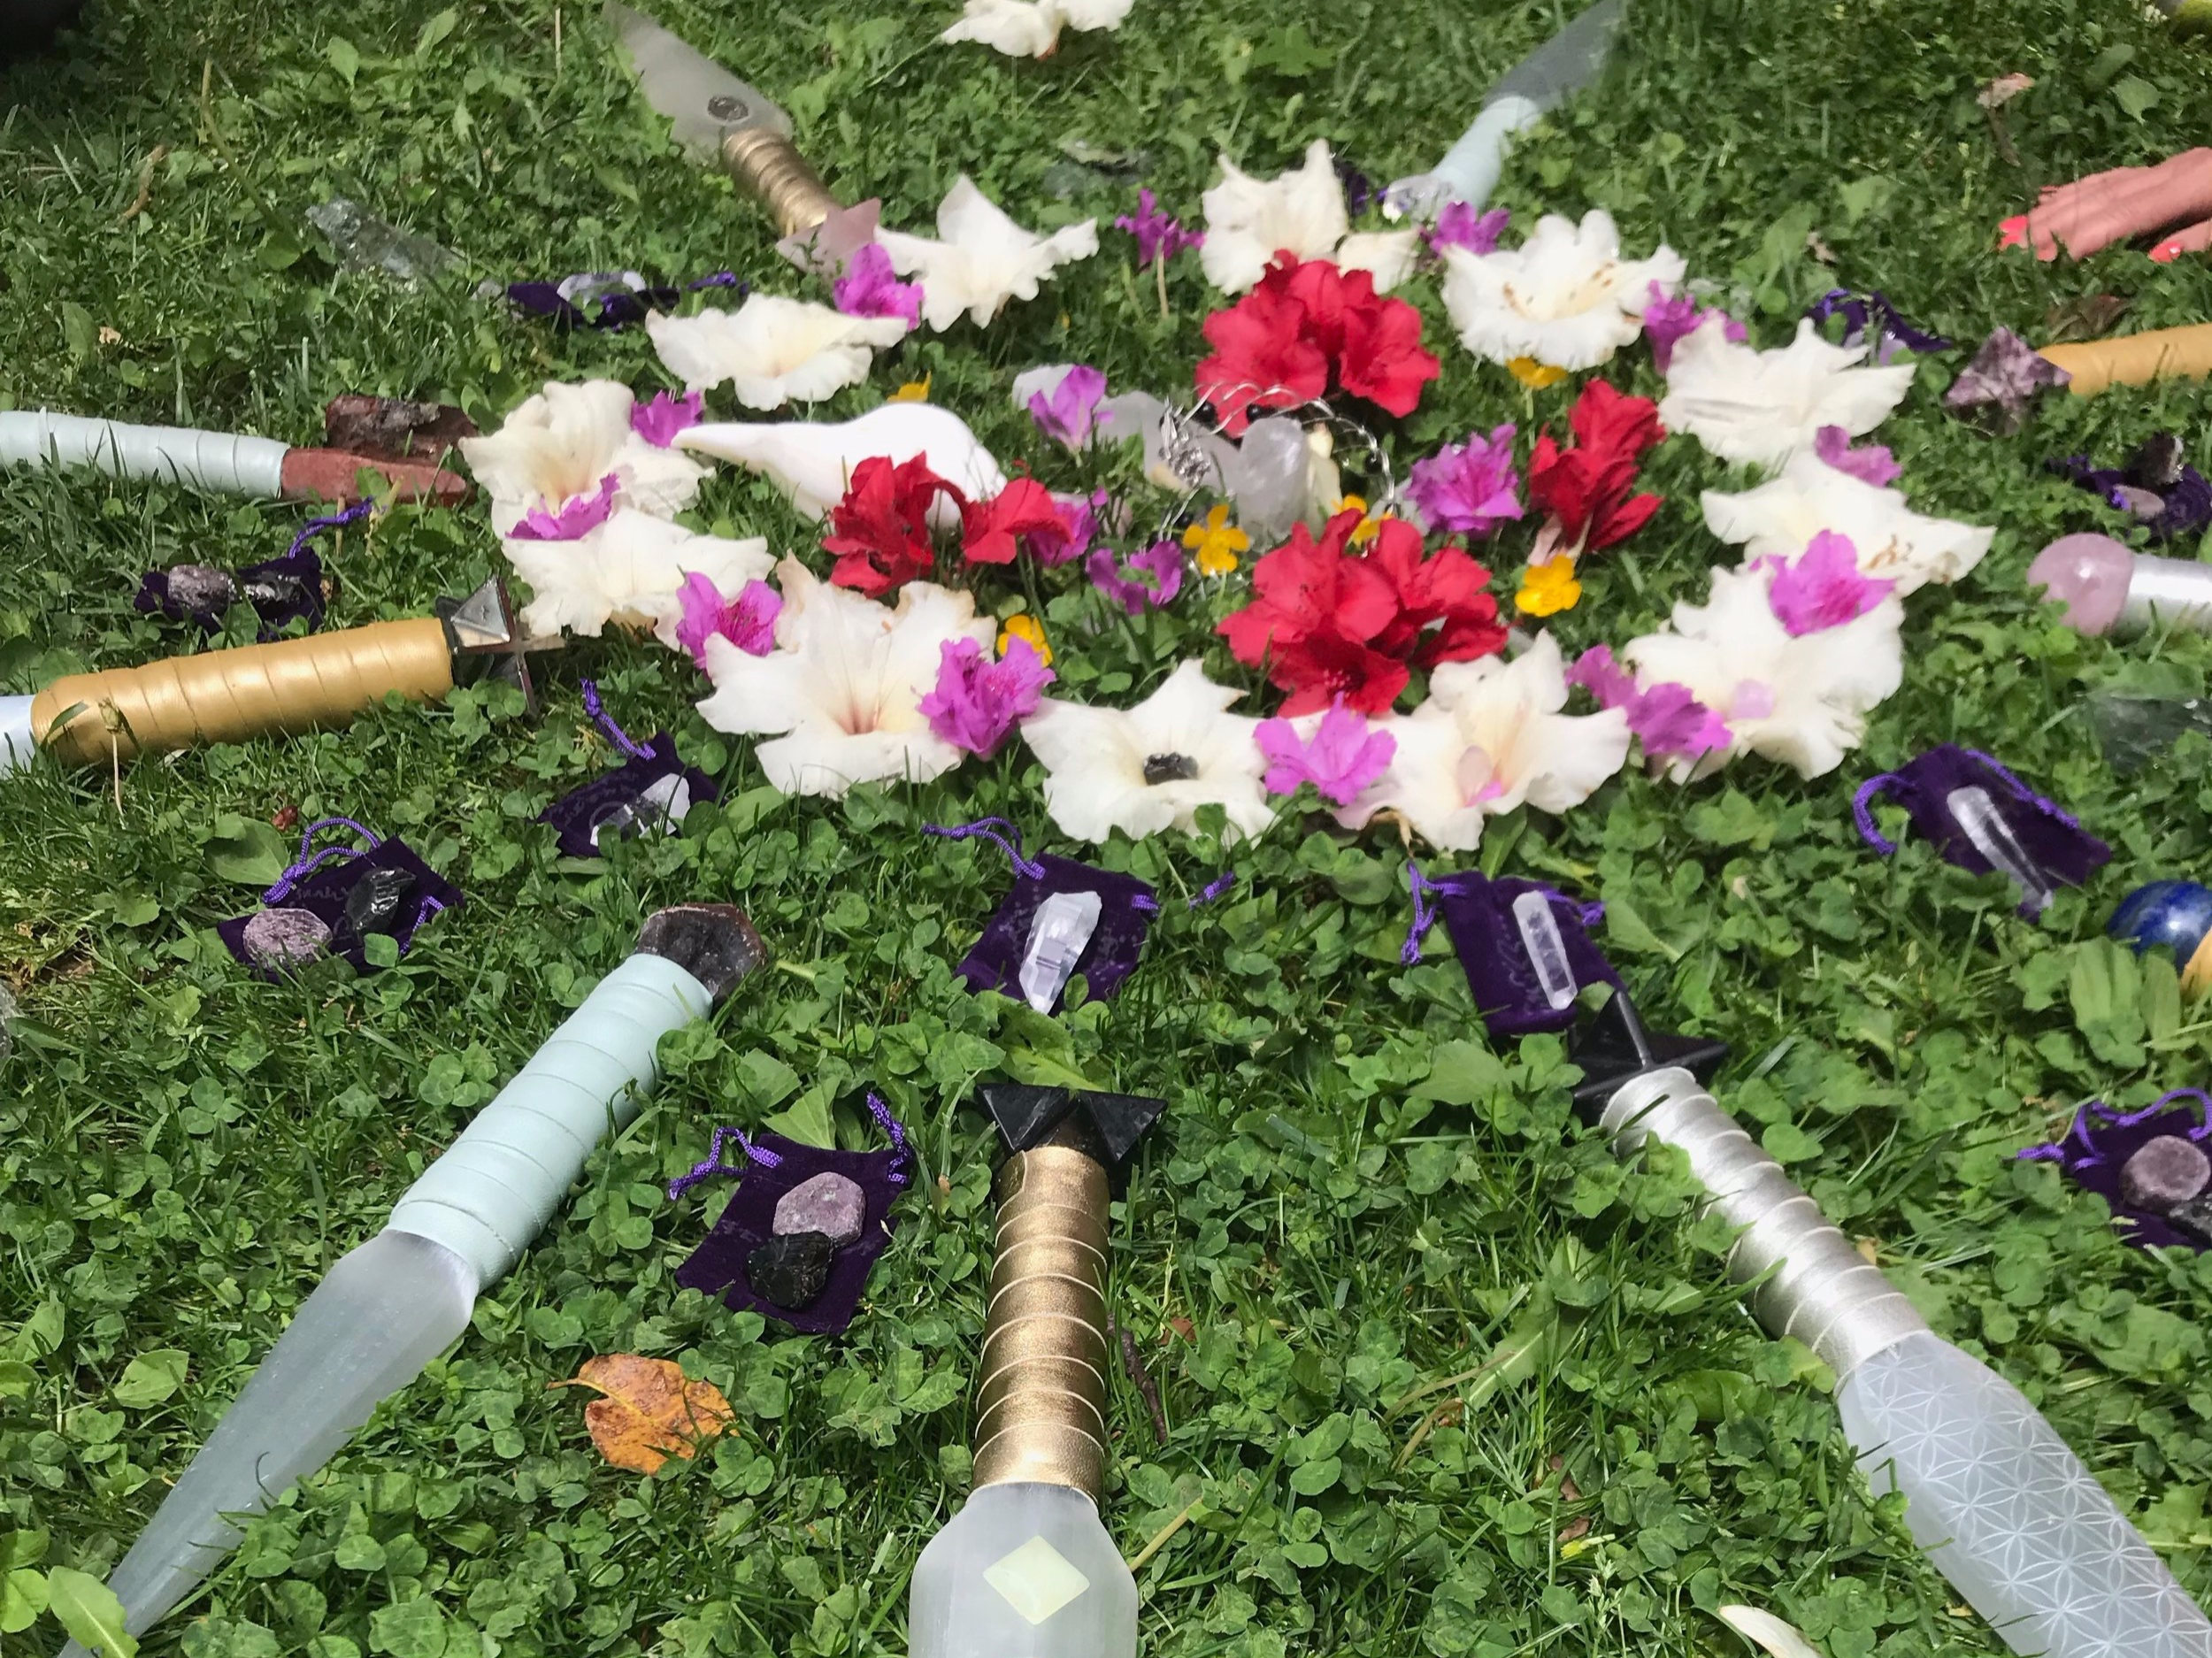 Ceremony - Just being in the vicinity of Mount Shasta creates an air of sacredness and ceremony like no other. Each moment is an impromptu ceremony as you connect with the land and with one another.